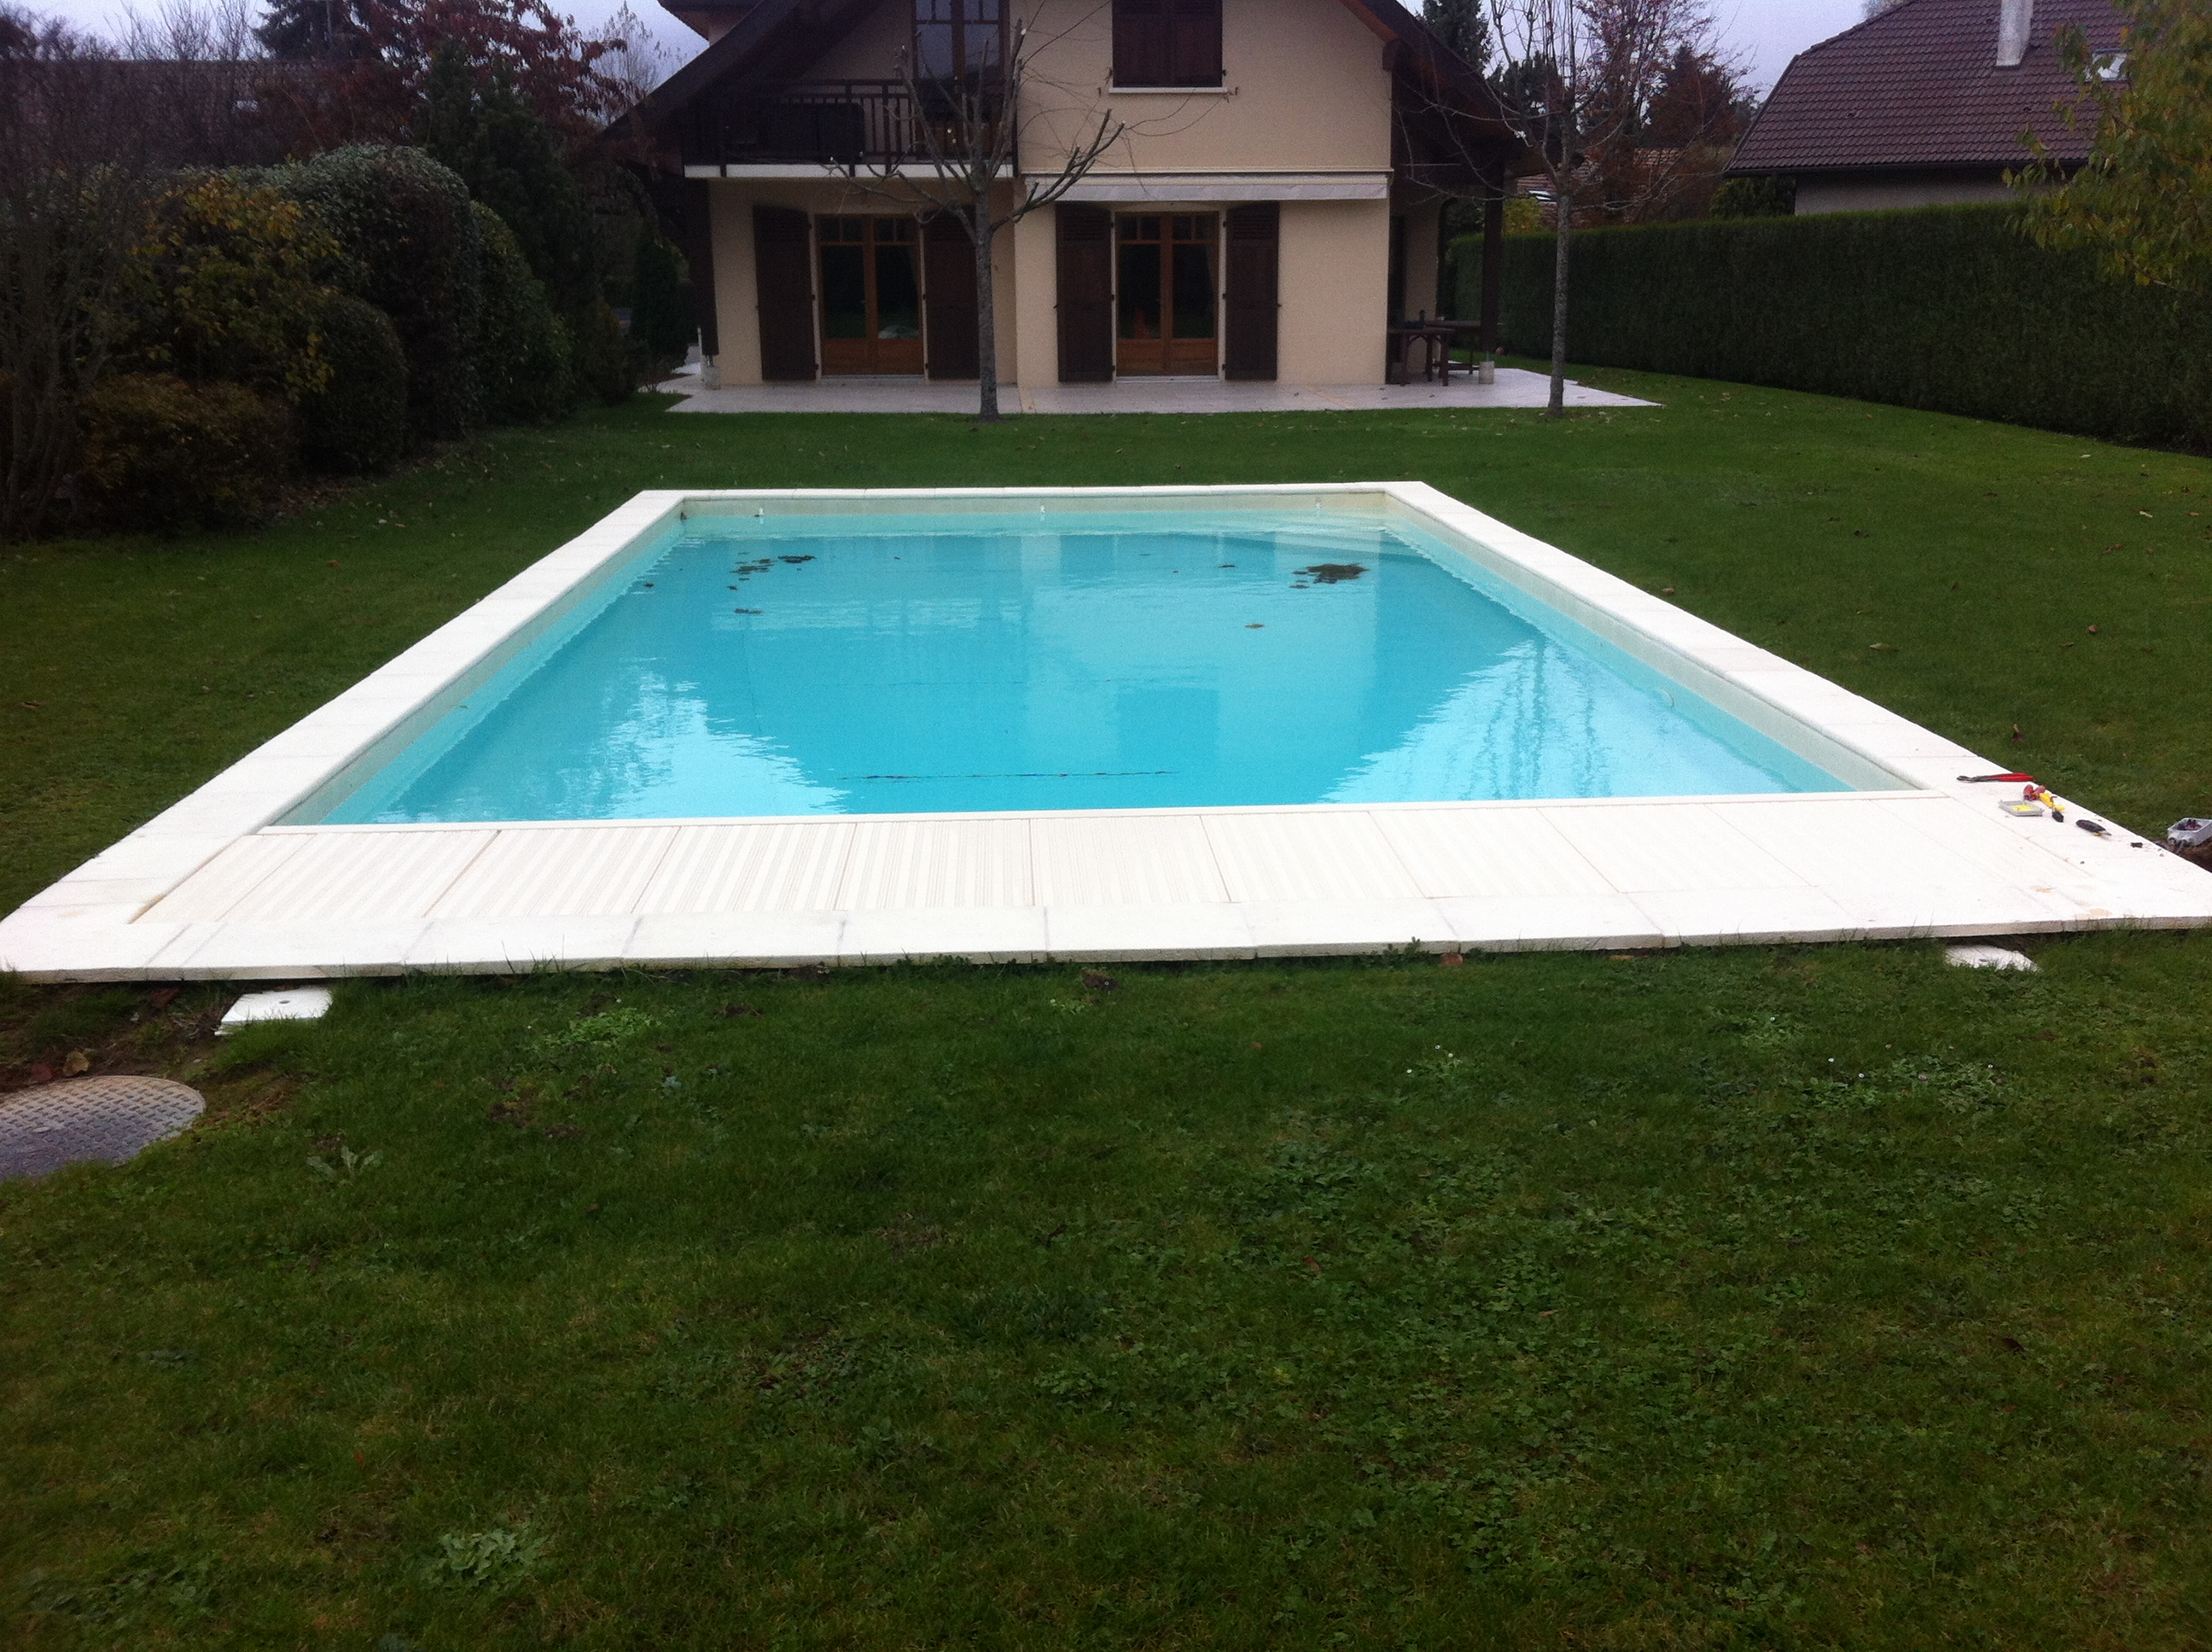 Volet roulant piscine exterieure for Construction piscine 86